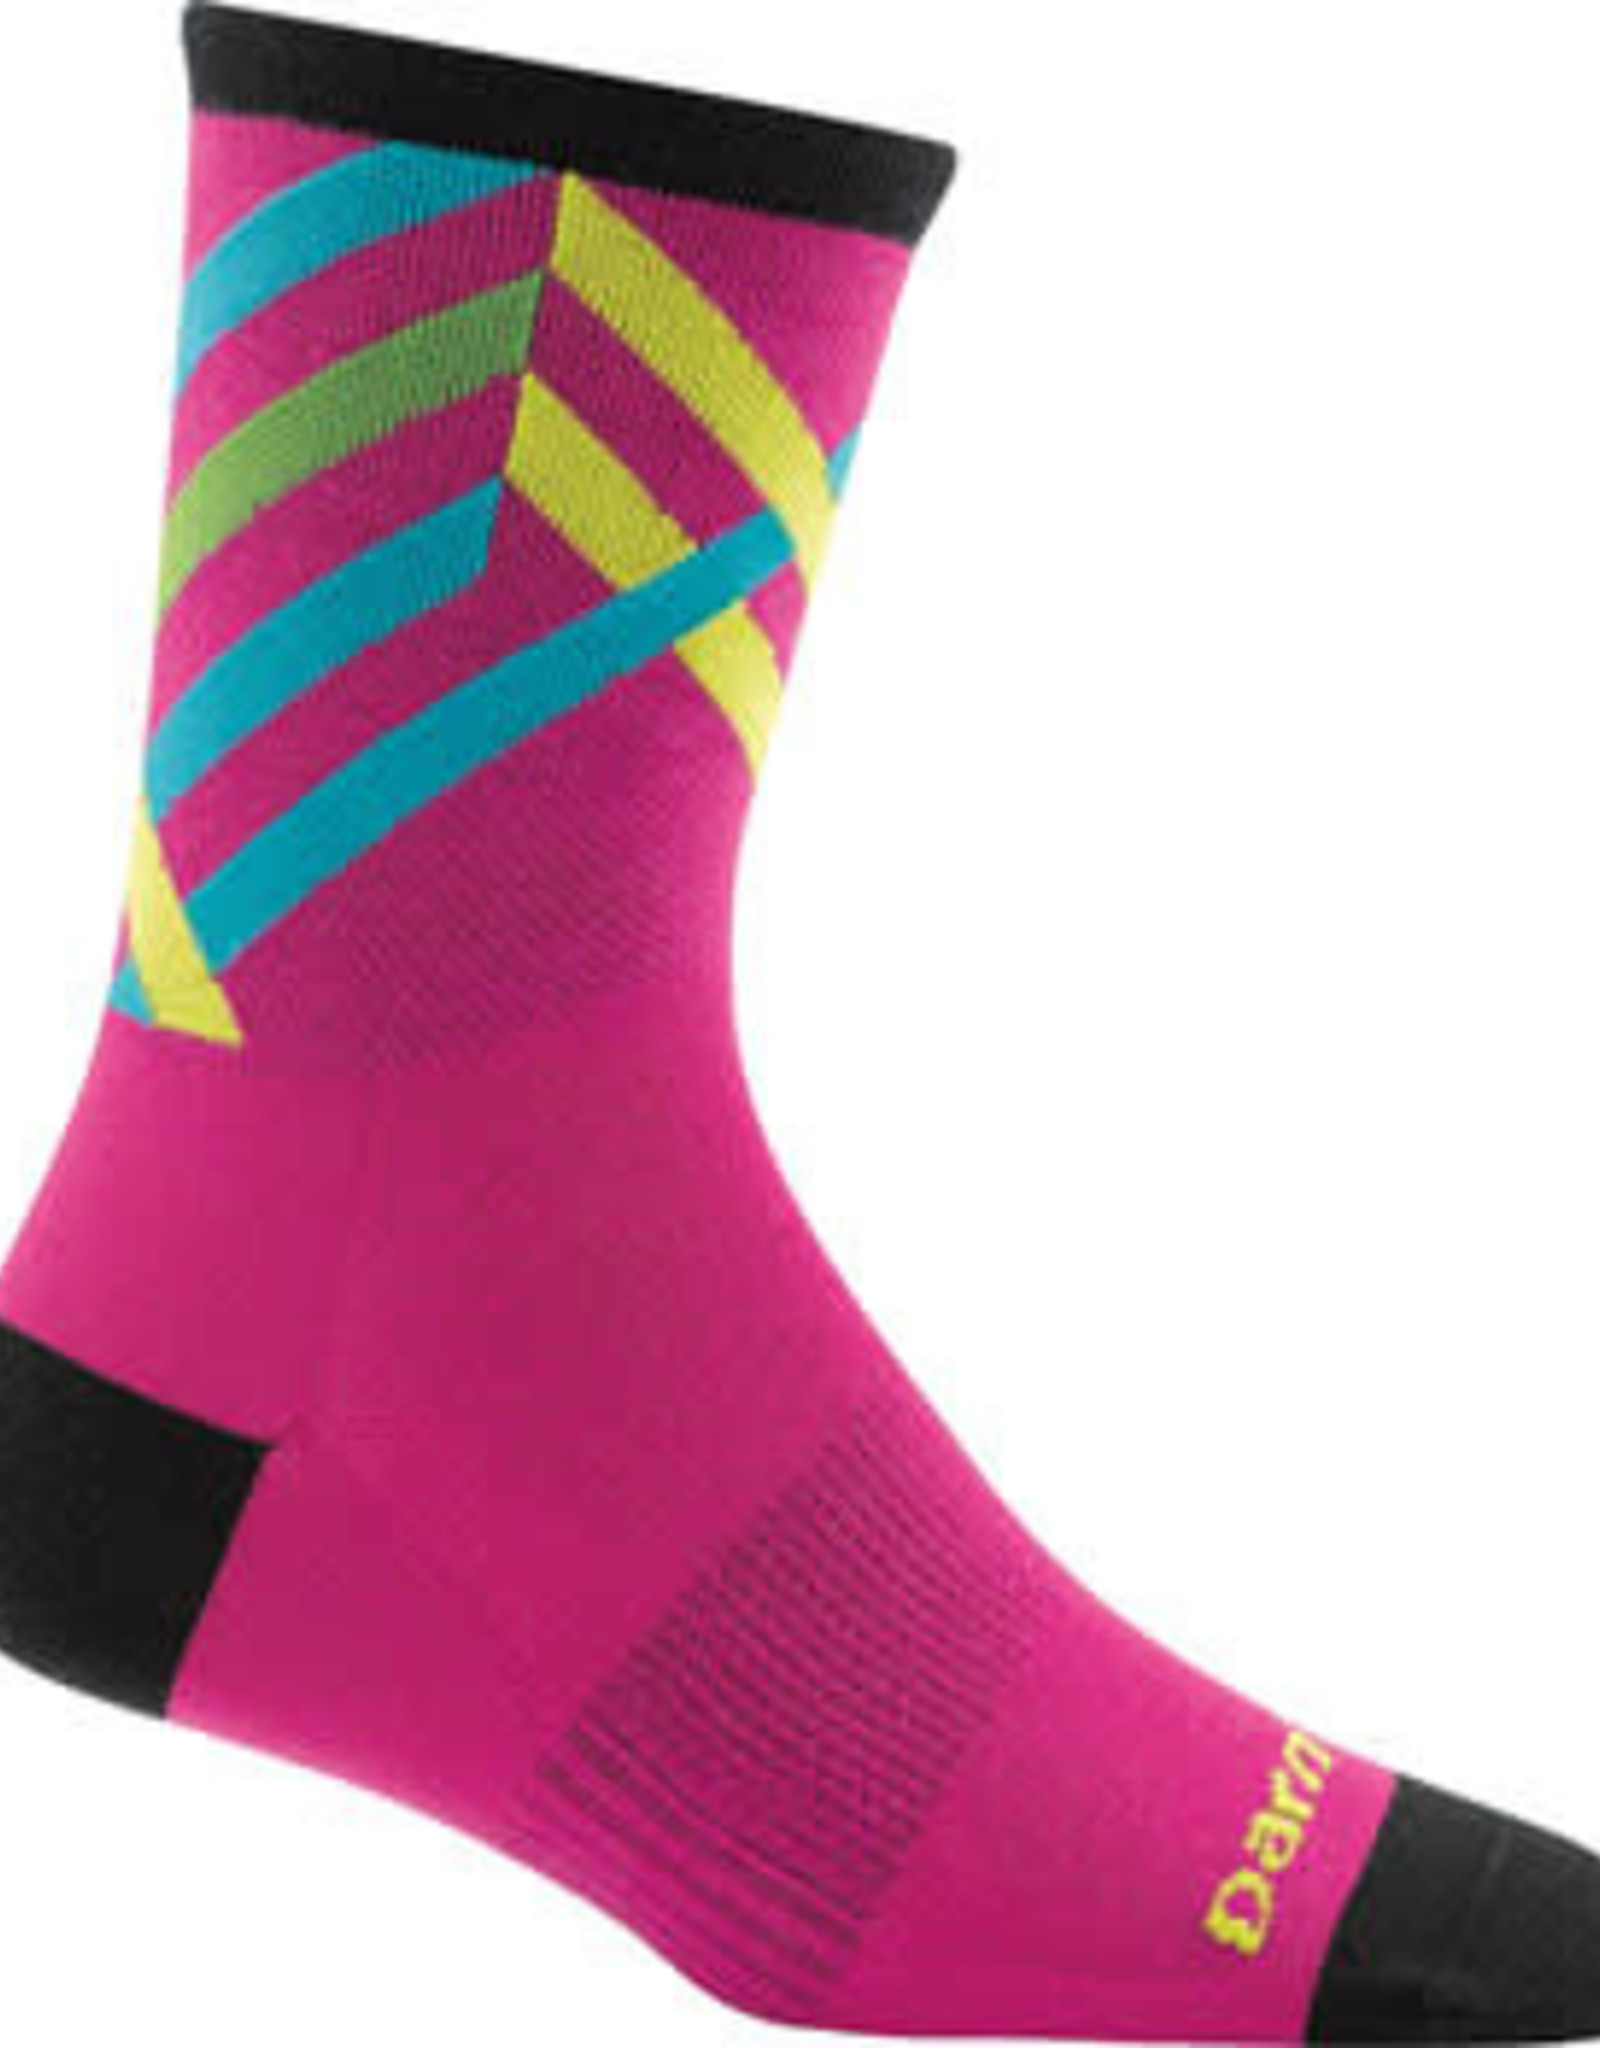 Darn Tough Vermont Darn Tough Vermont Graphic Stripe Micro Crew Ultra Light Socks - 4 inch, Pink, Women's, Large